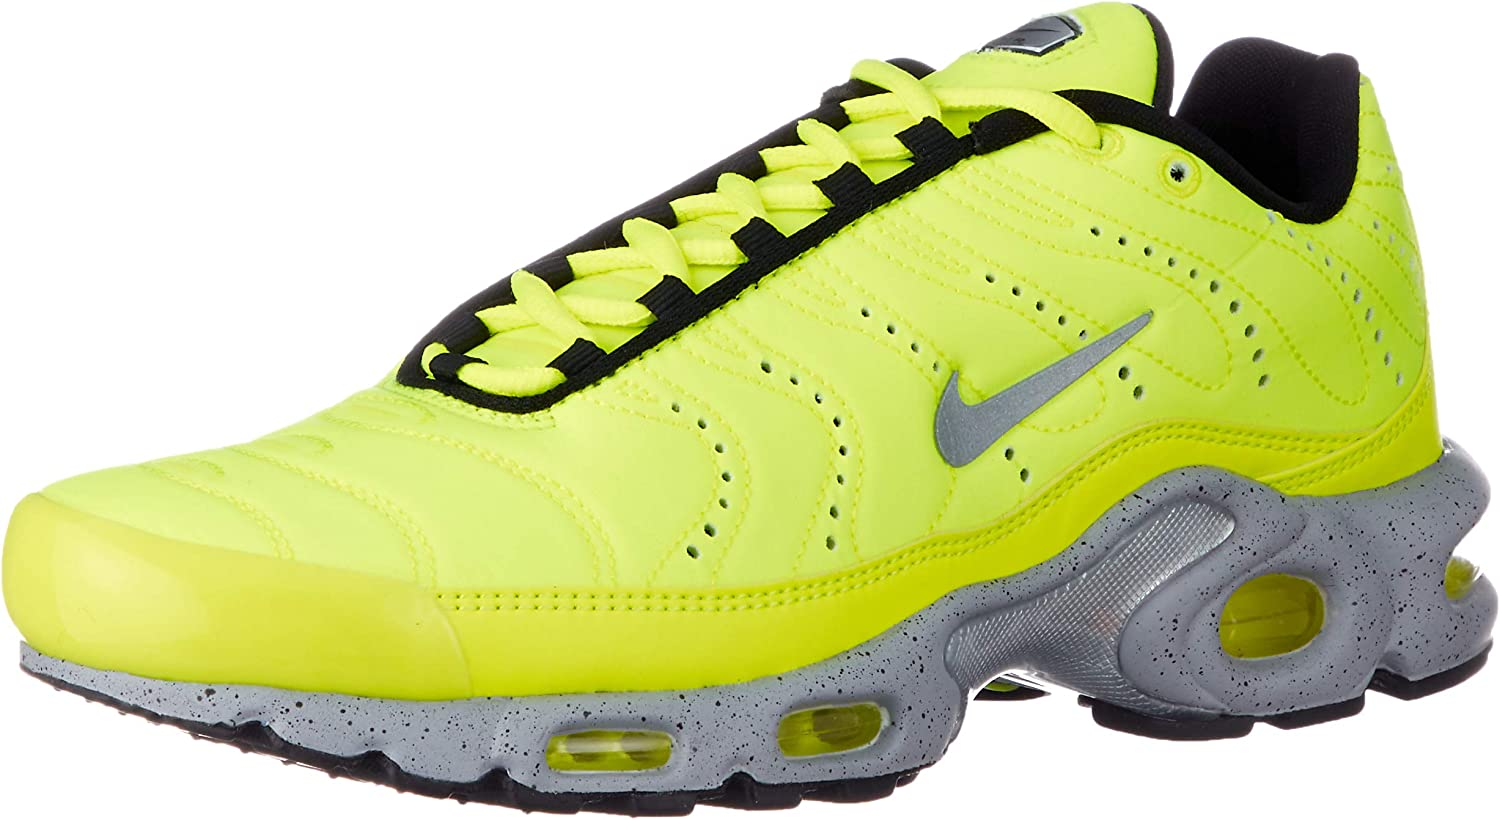 NIKE Air MAX Plus, Zapatillas de Running para Hombre: NIKE: Amazon.es: Zapatos y complementos